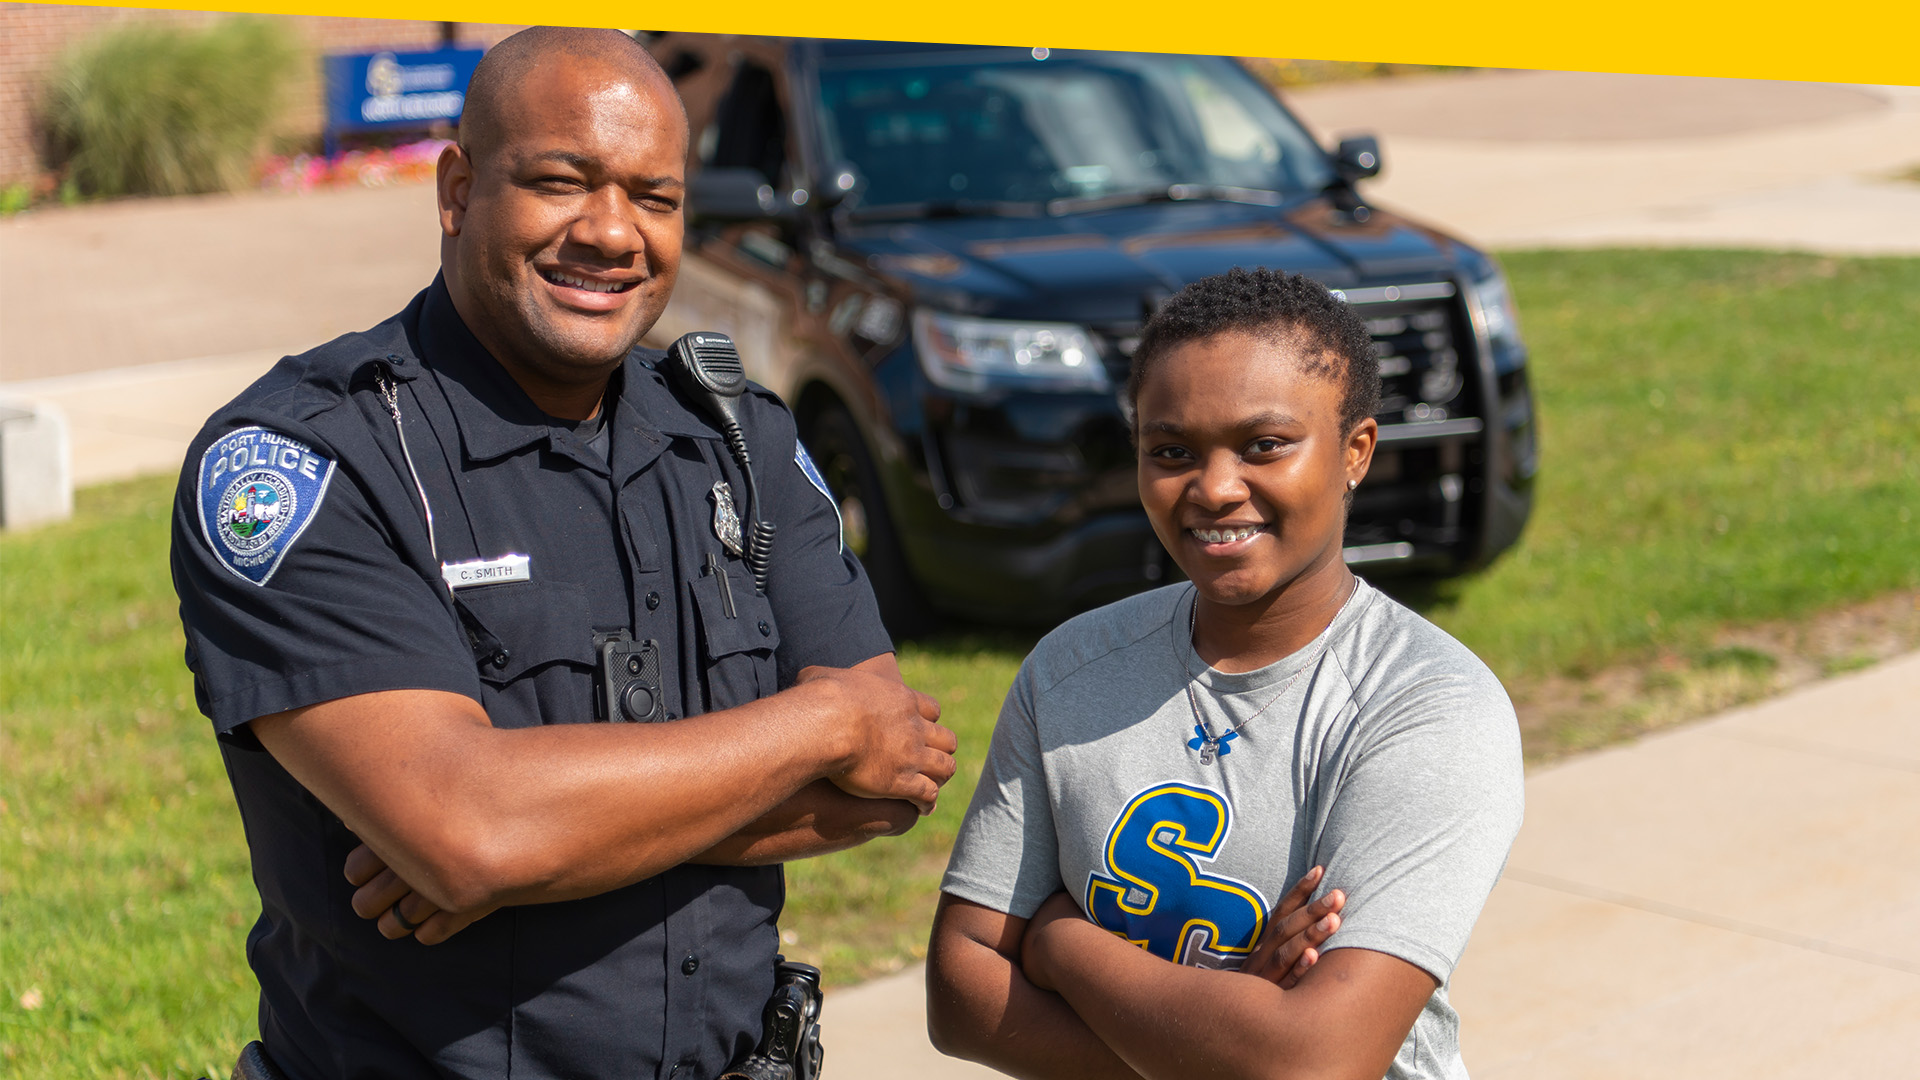 SC4 male officer and female criminal justice student pose in front of police car.